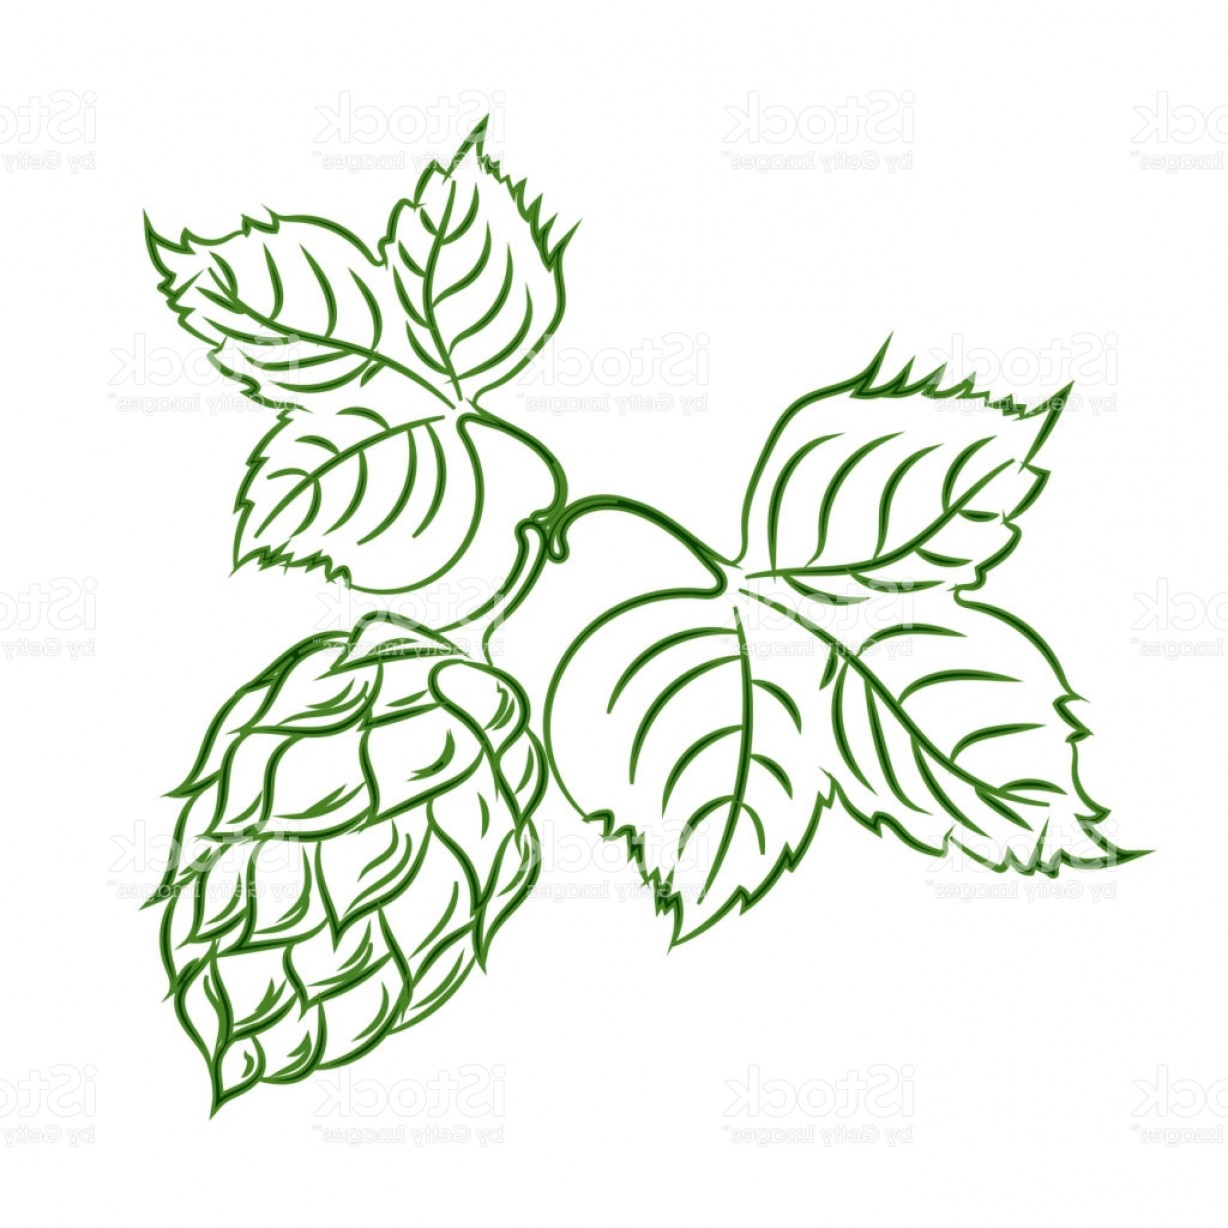 Hops Vector Art: Branch Of Hops With Cones Brewing Agriculture Gm